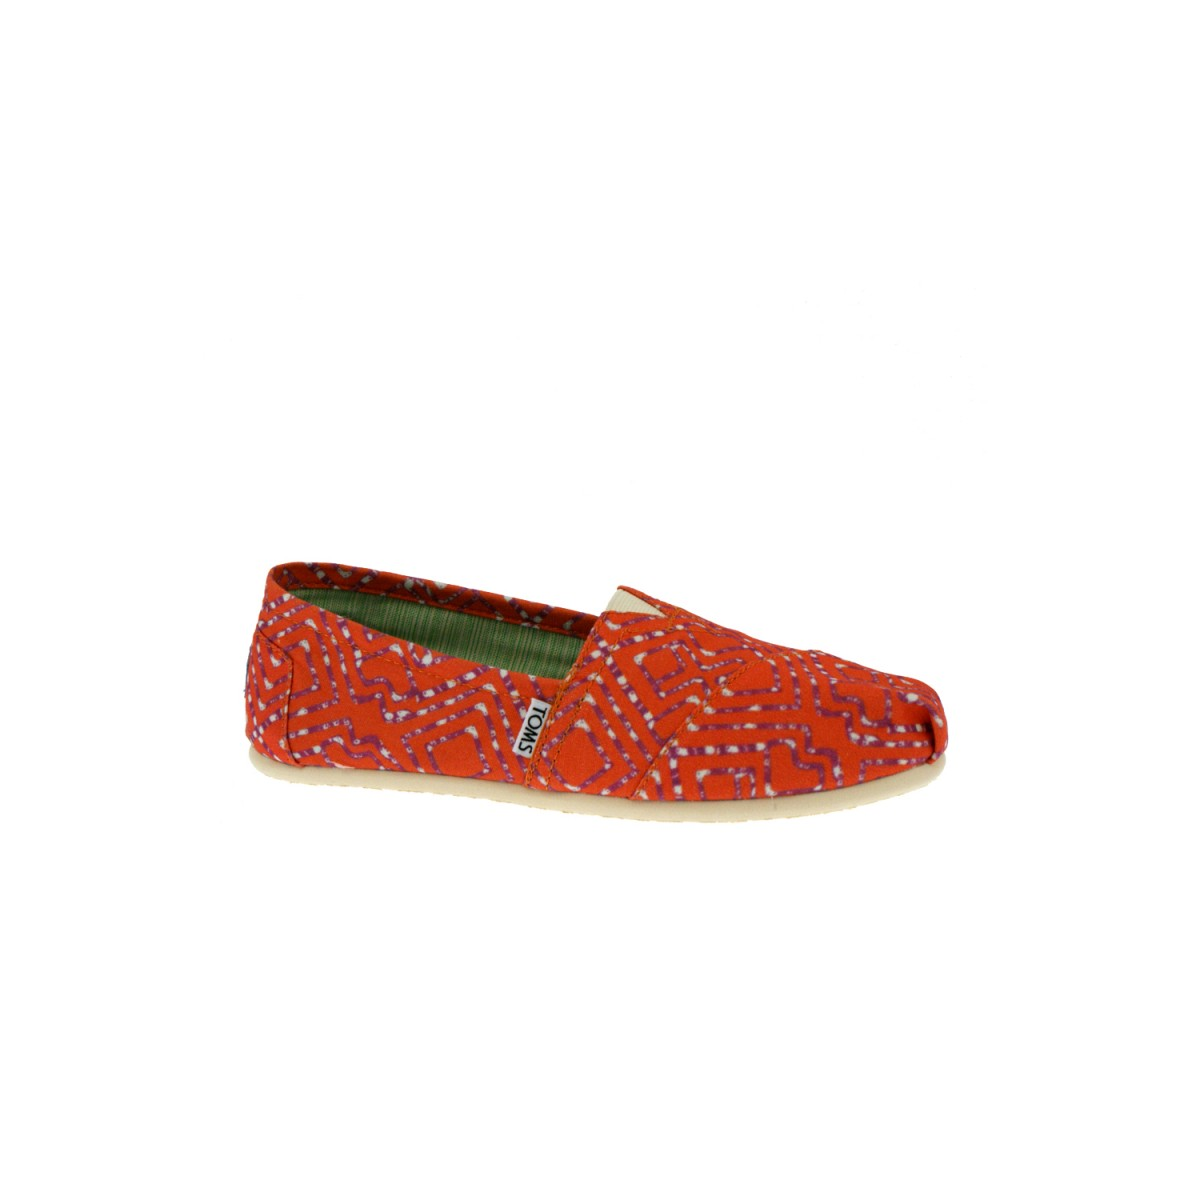 TOMS Classics Coral Geometric Tie-Dyed-35